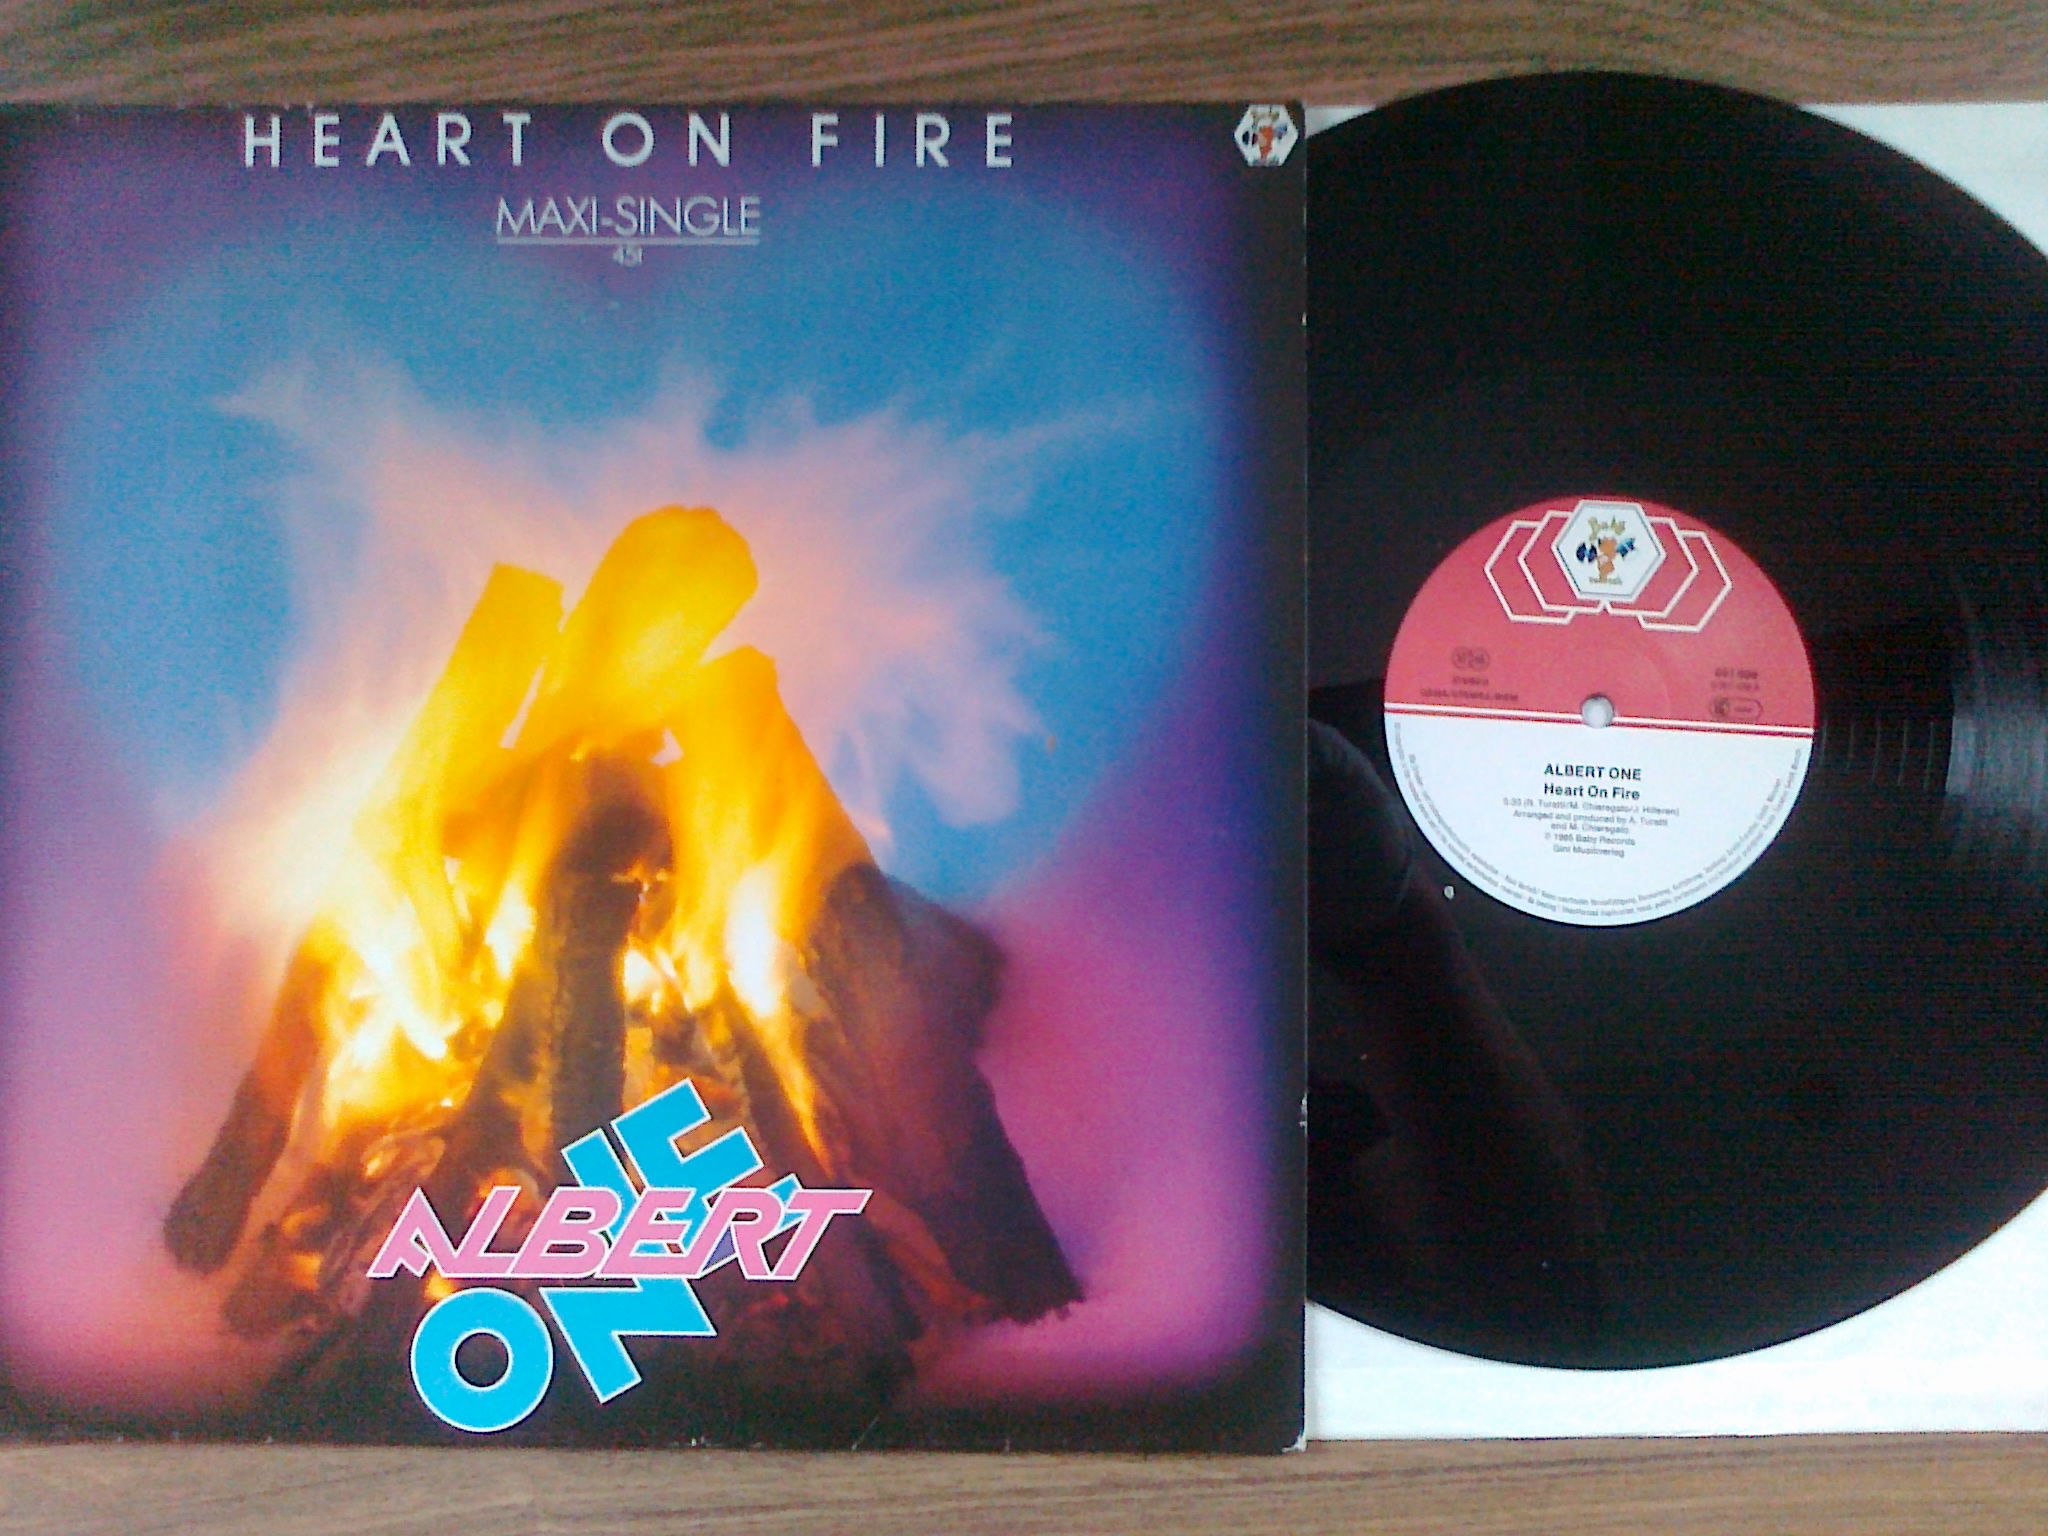 Albert One - Heart on fire